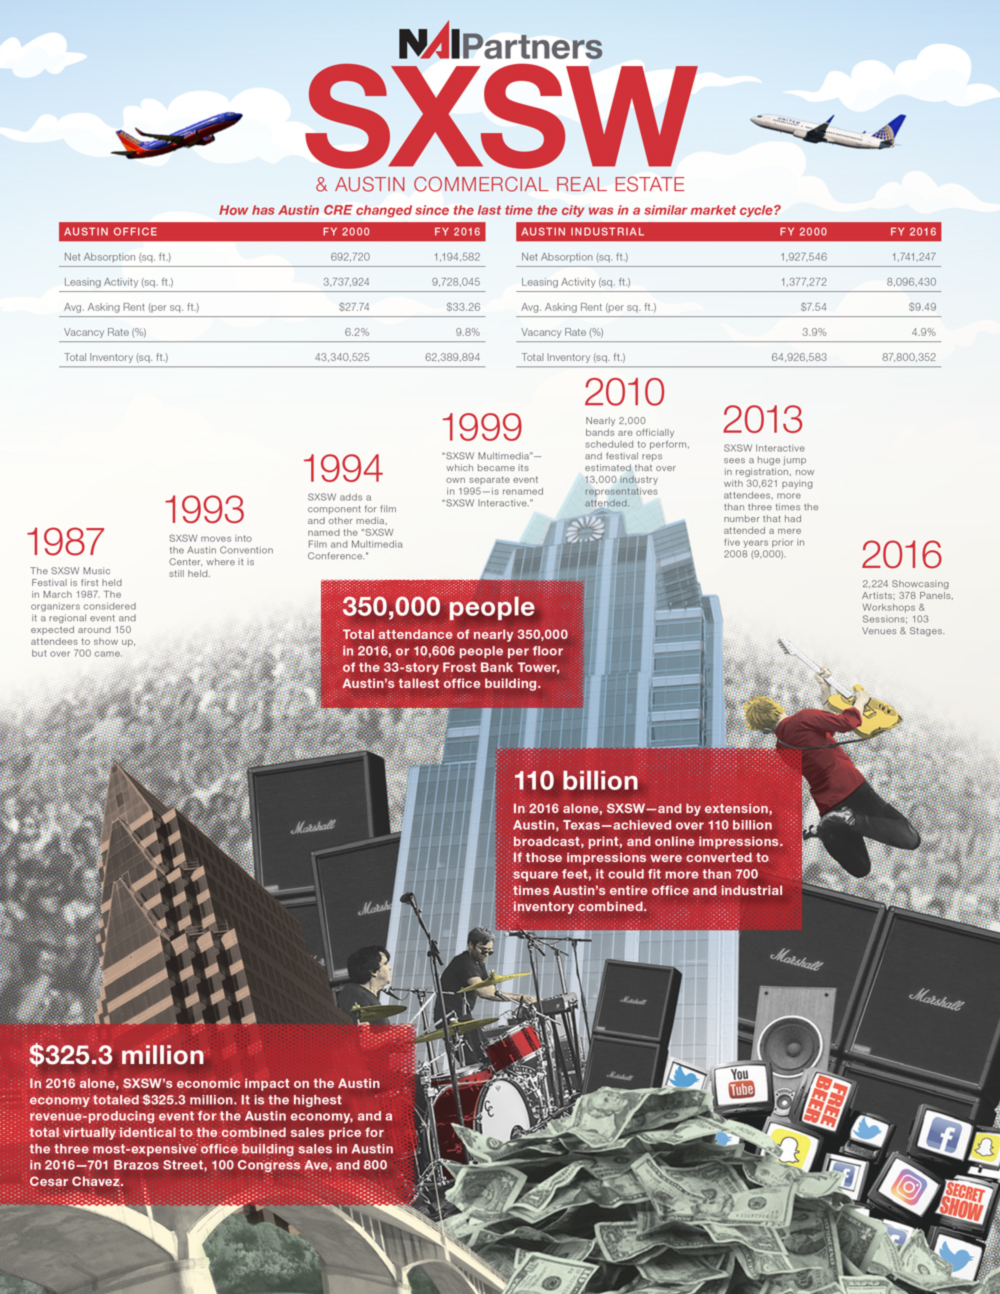 Austin SXSW and Commercial Real Estate | Facts and Timeline Information